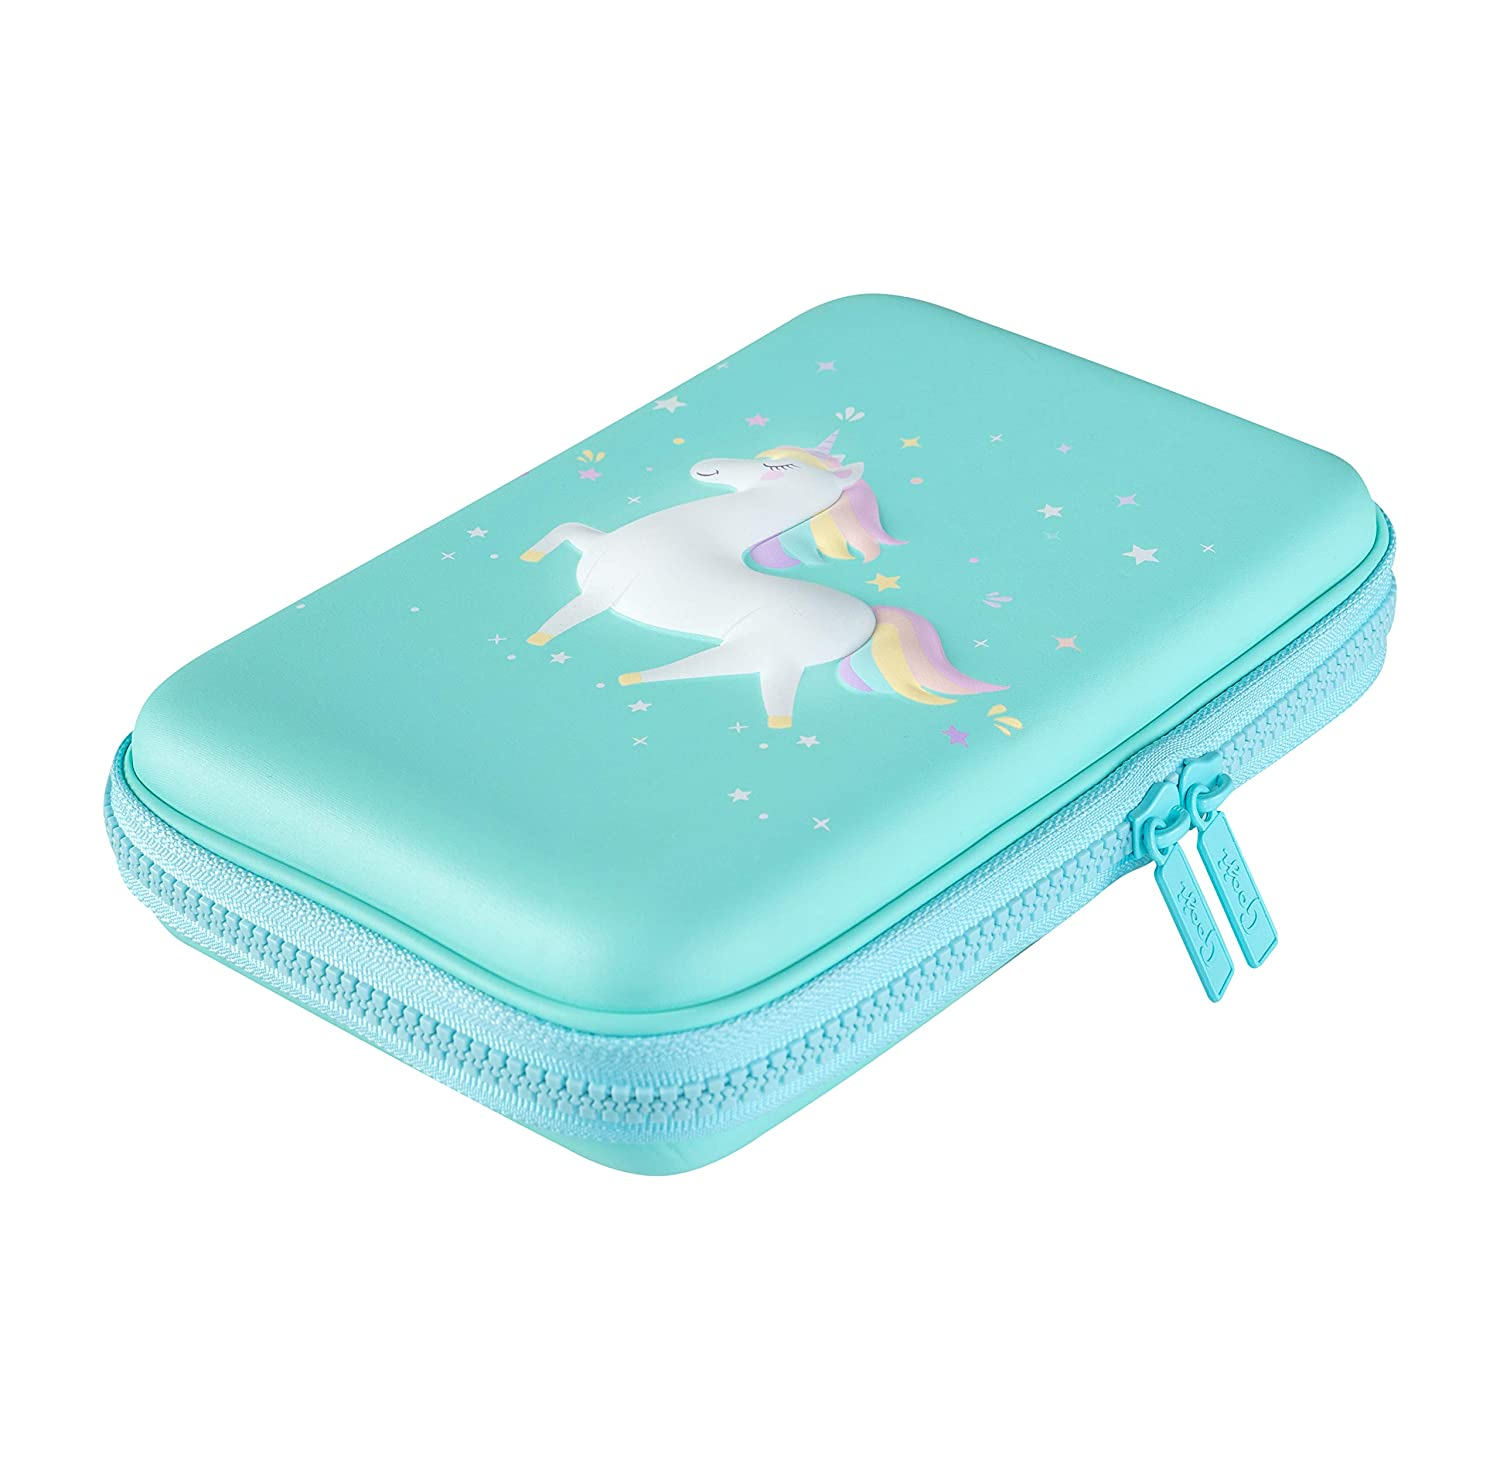 Bright Colored Storage Box Classroom for Markers Art Use Pens Magical 3D Creature Colored Pencils Compact and Portable Home Hard Top Gooji Unicorn Pencil Case for Girls Blue